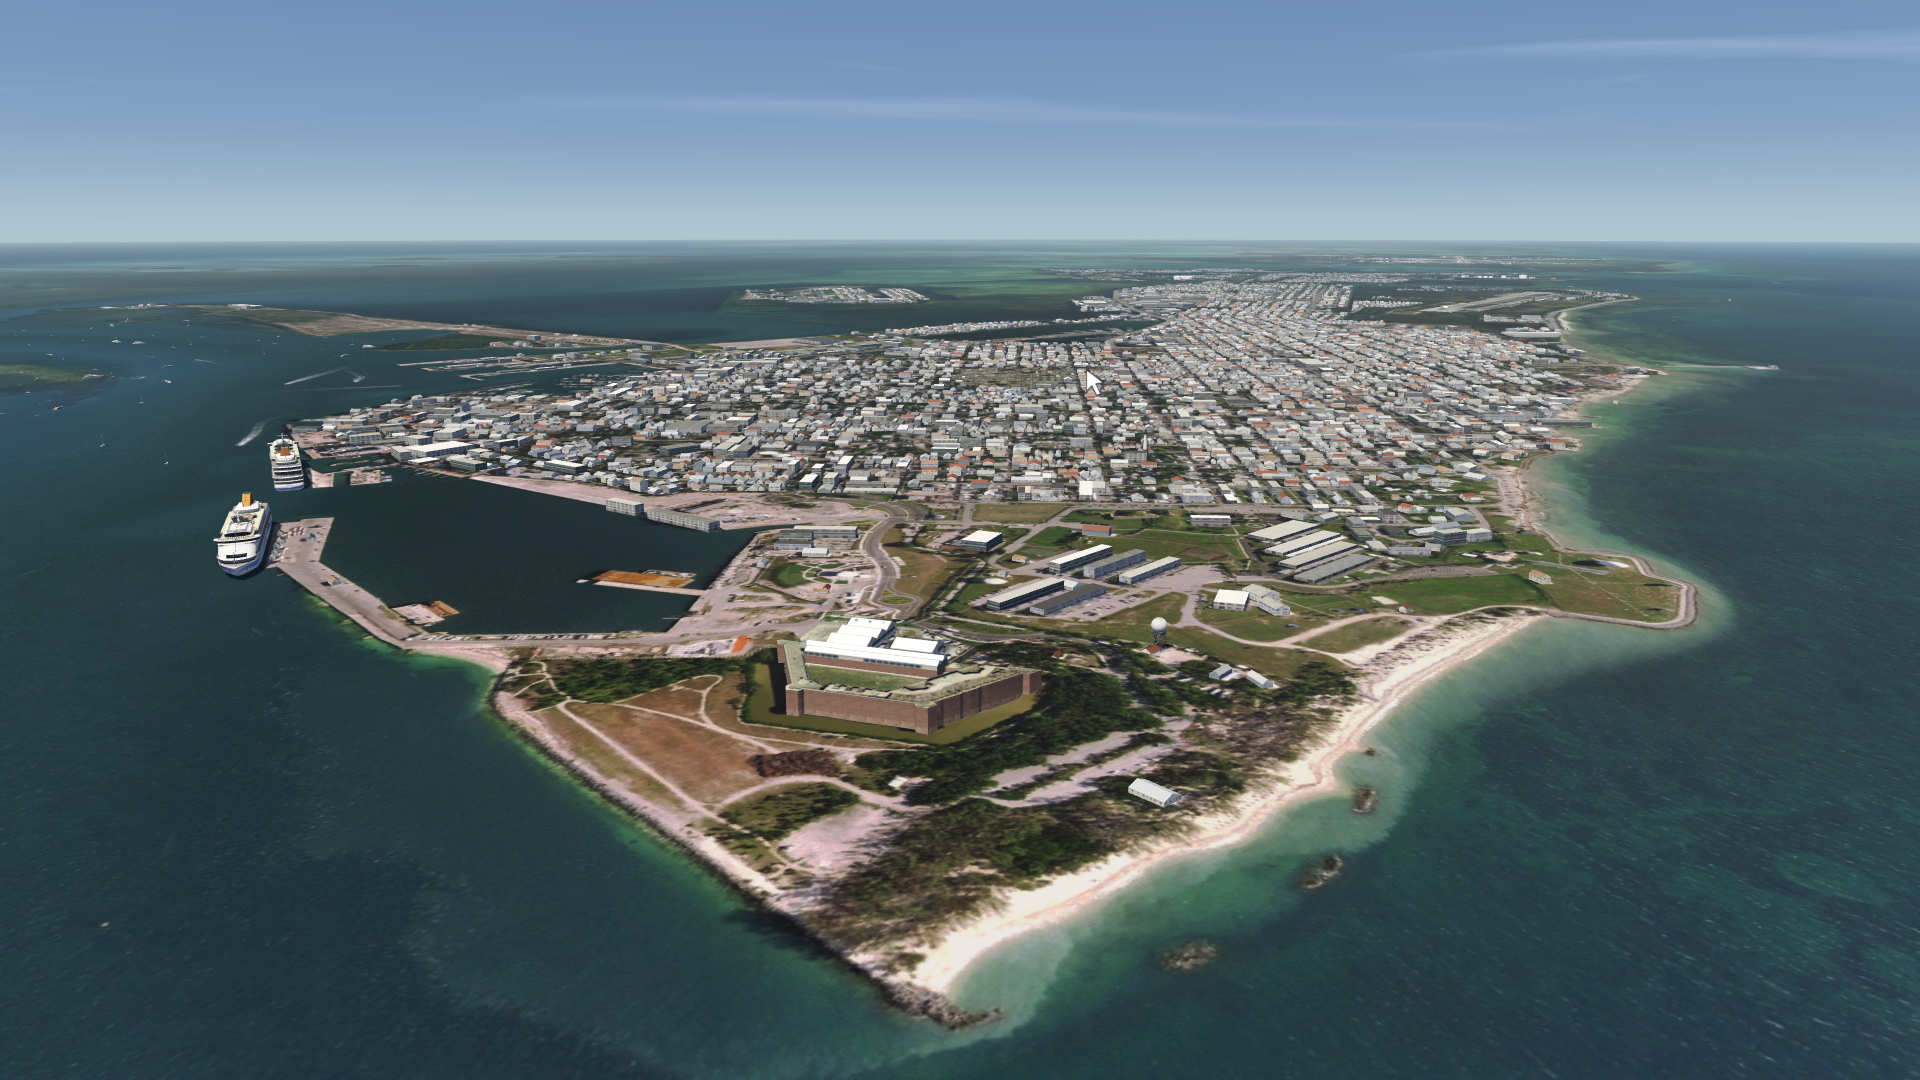 AEROSOFT - USA SOUTH FLORIDA FOR AEROFLY FS 2